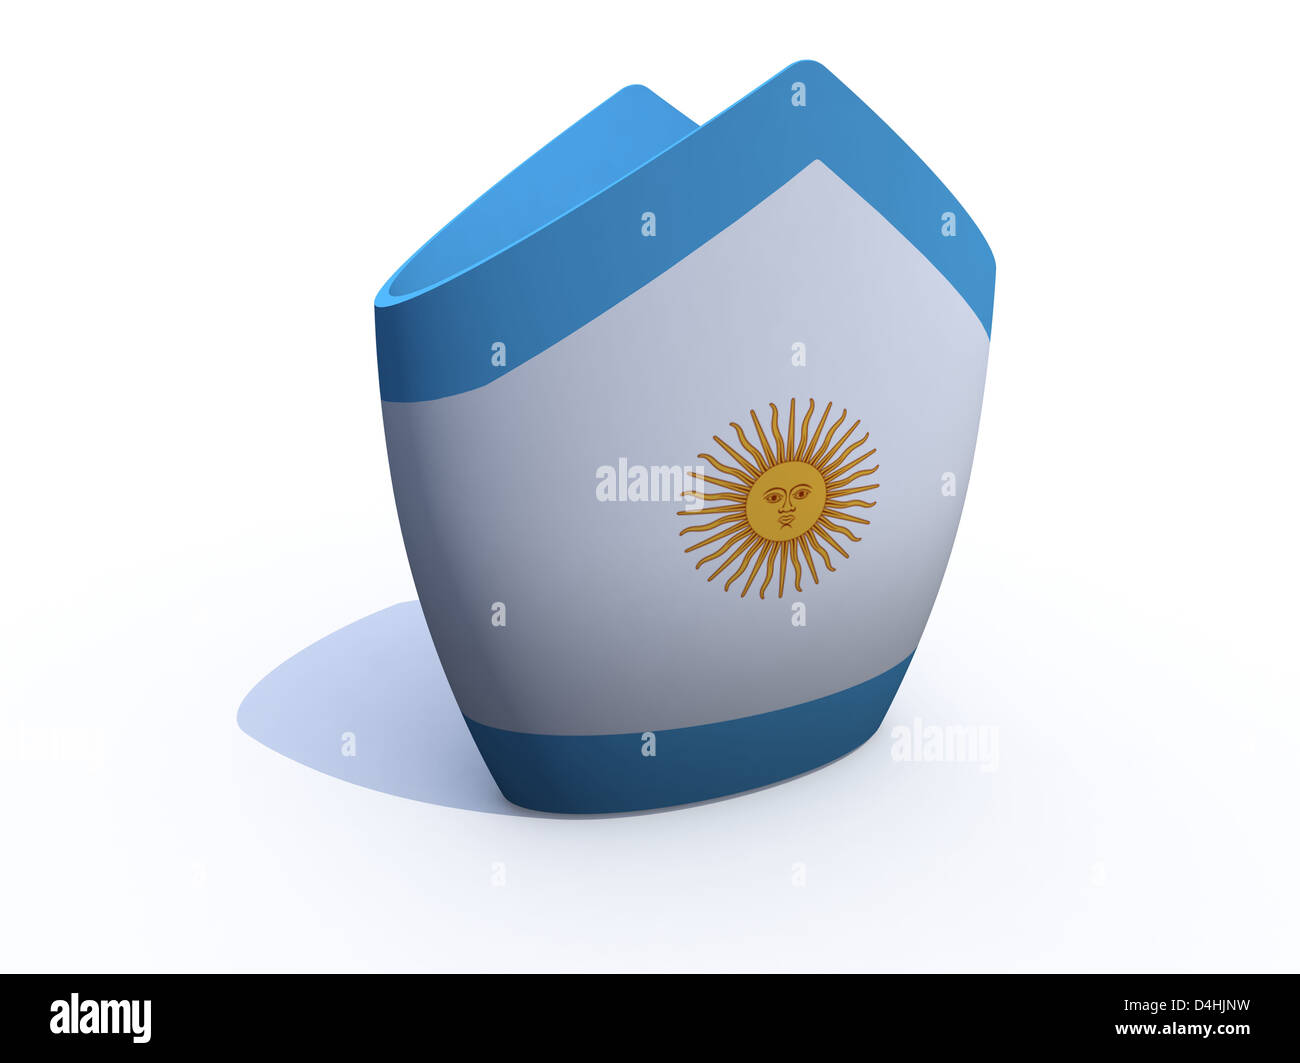 Mitre pope hat stock photos mitre pope hat stock images alamy argentine pope hat 3d illustration stock image maxwellsz